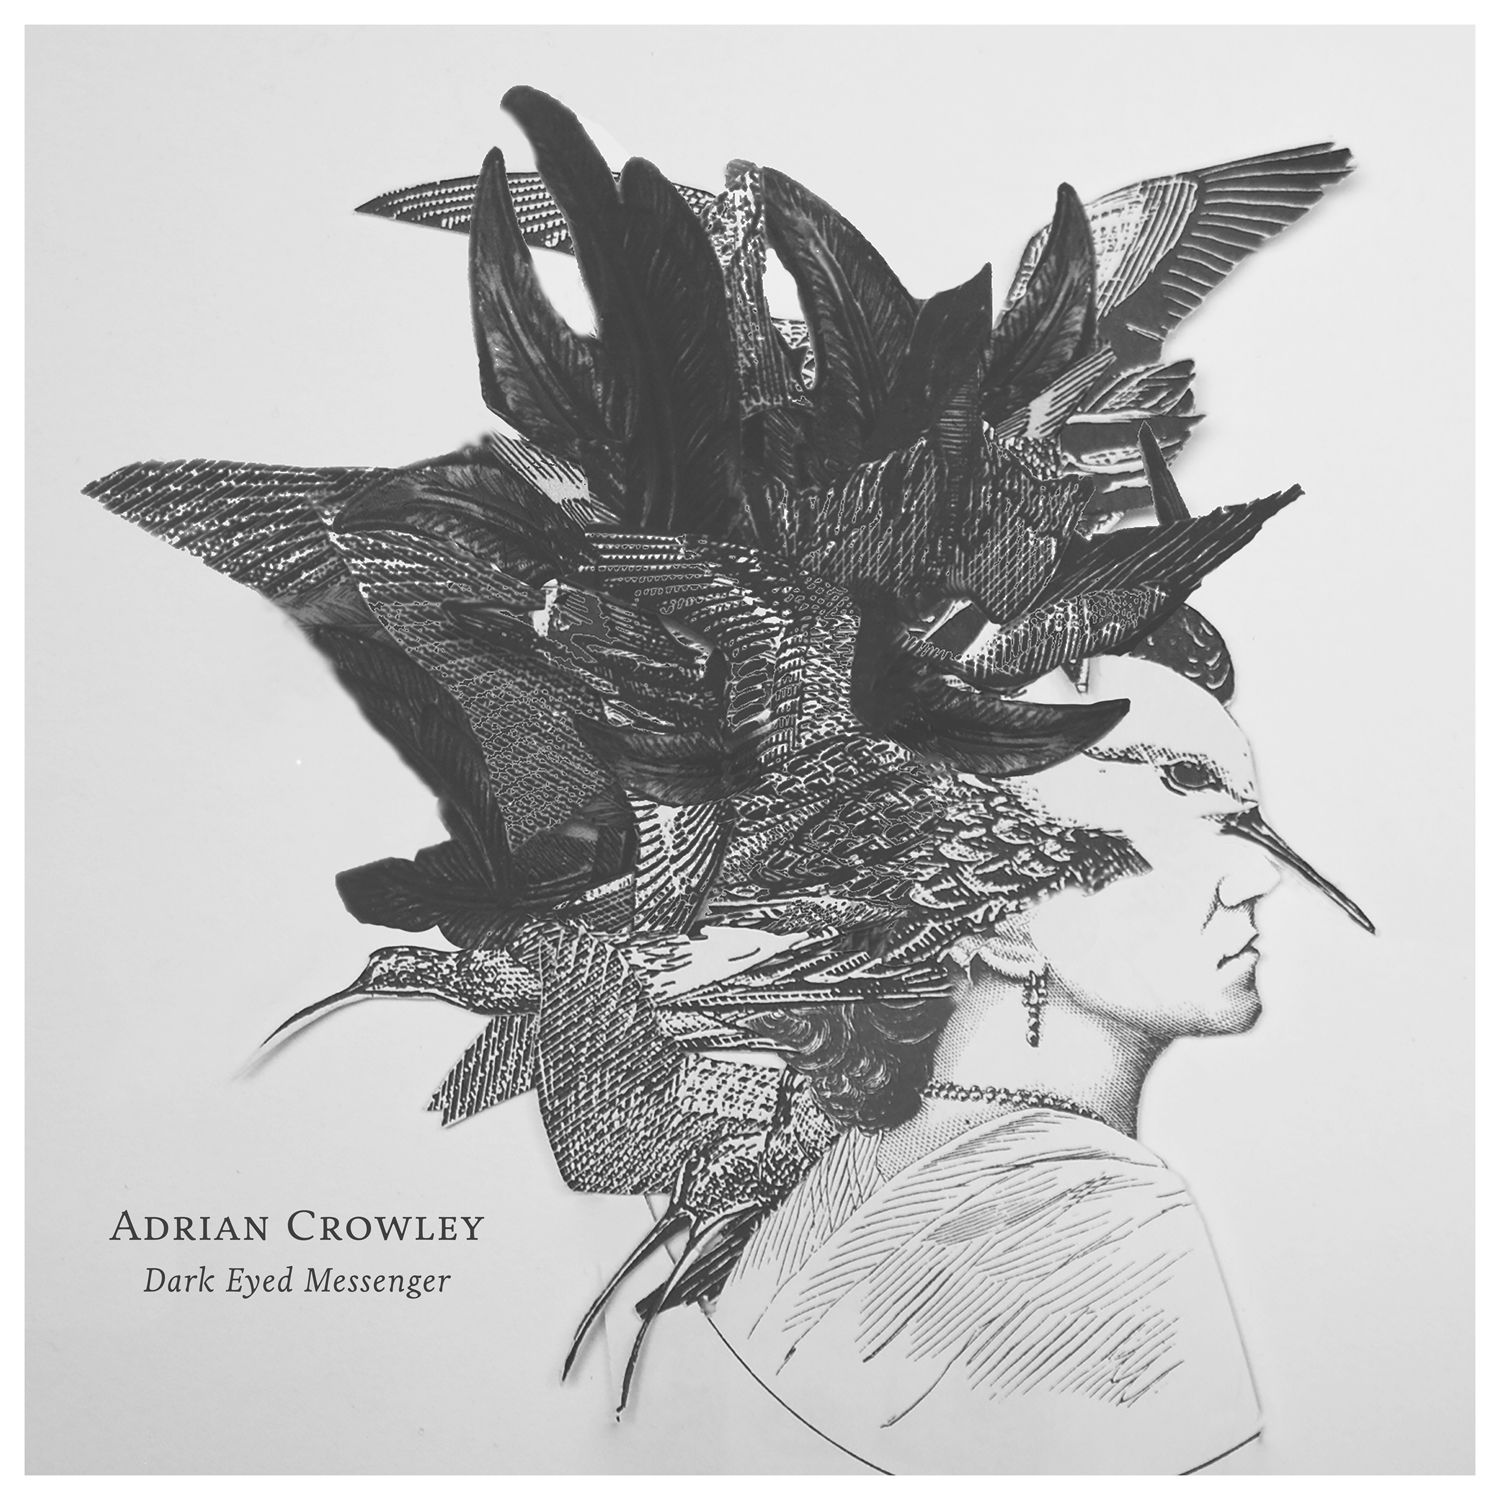 Adrian Crowley - Dark Eyed Messenger - CD Album (2017) - Adrian Crowley